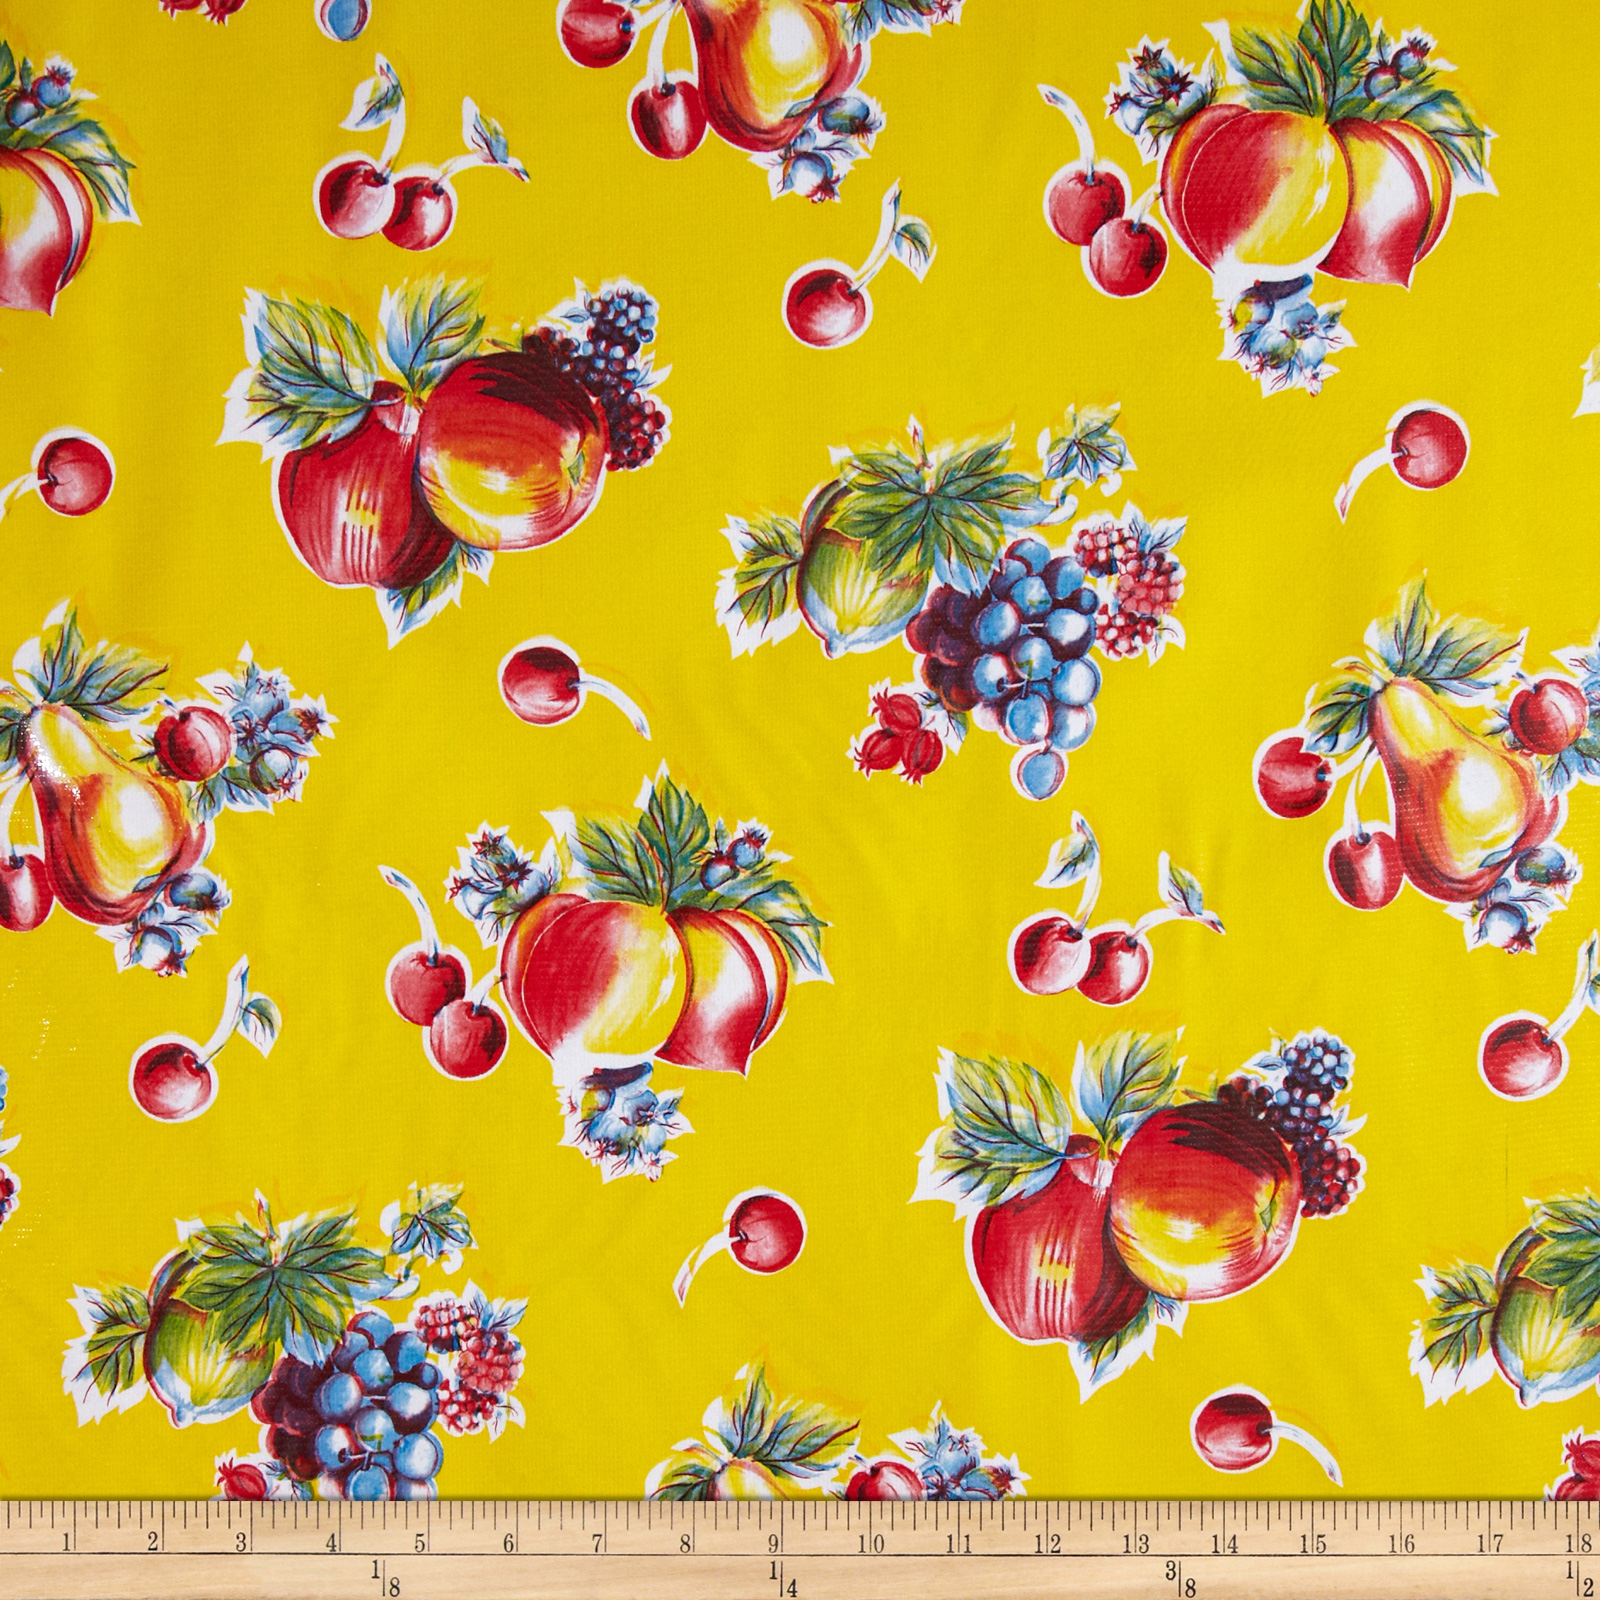 Oil Cloth Pears & Apples Yellow Fabric